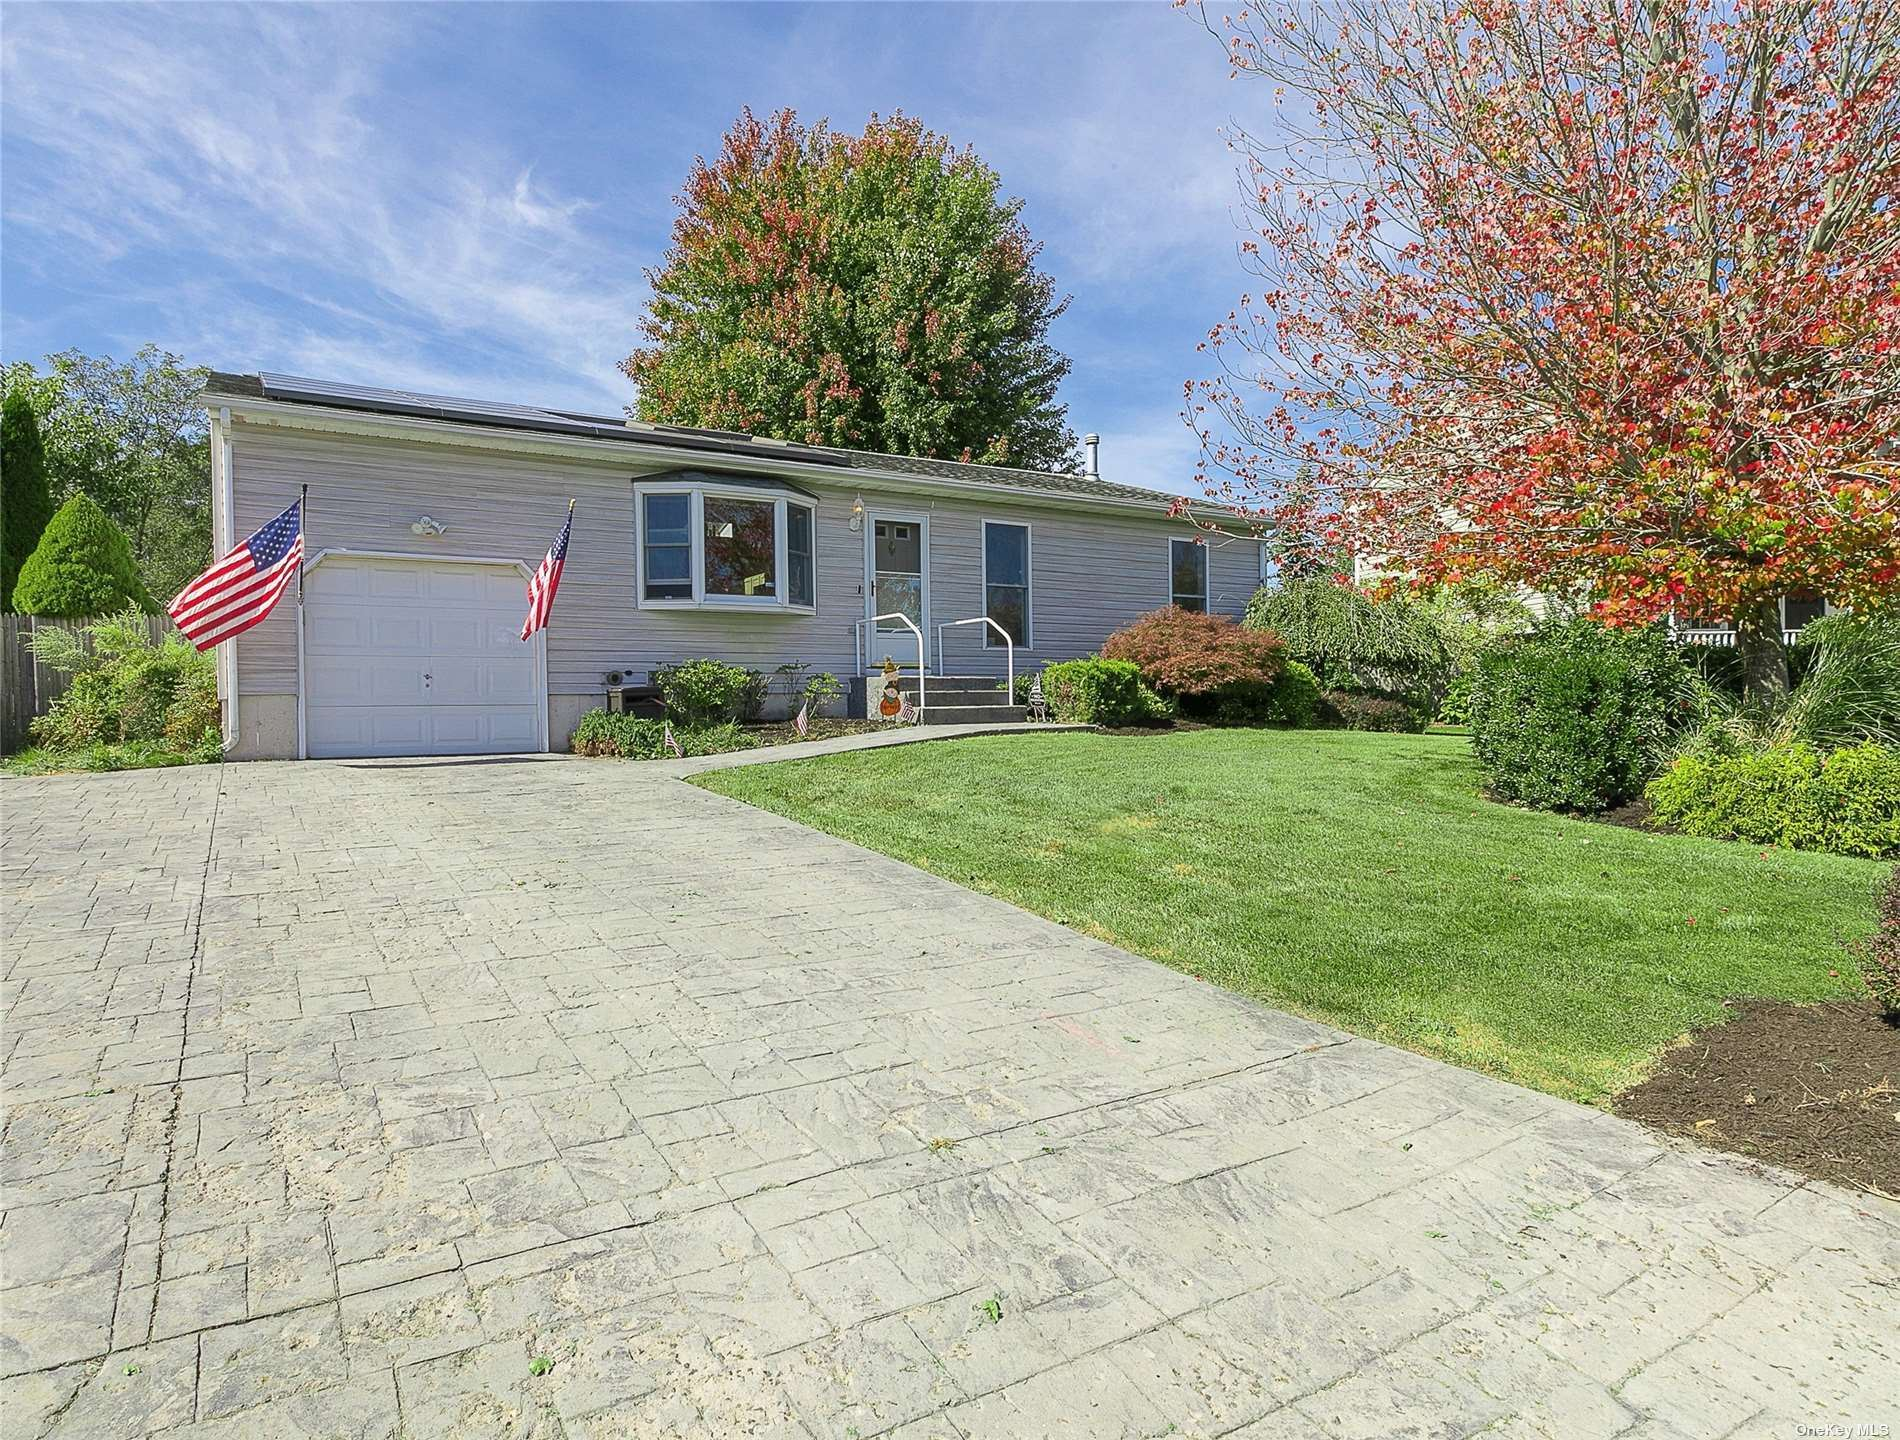 20 Meadow Court, Manorville, NY 11949 - MLS#: 3352246